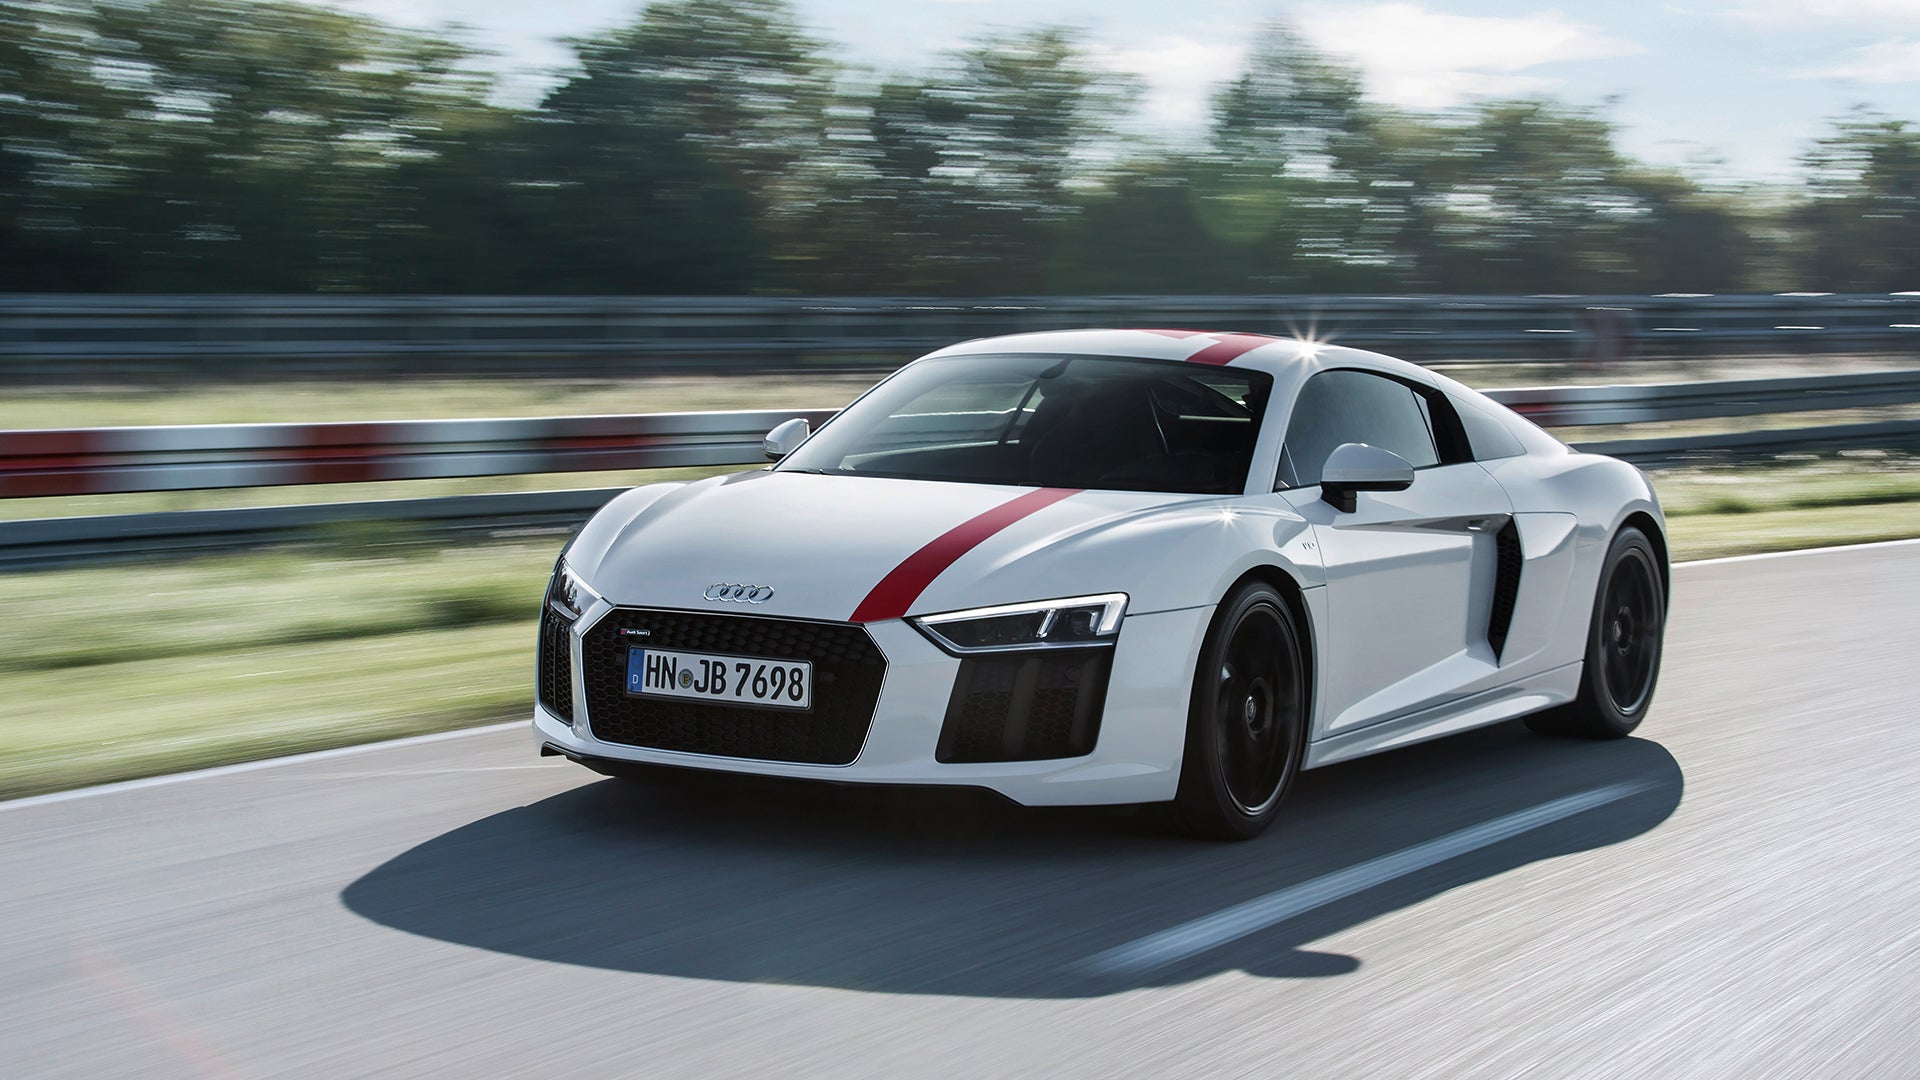 much does customers chance audi audis racer a how at s sporting gives cars cost lms checkered report flag motors robb the